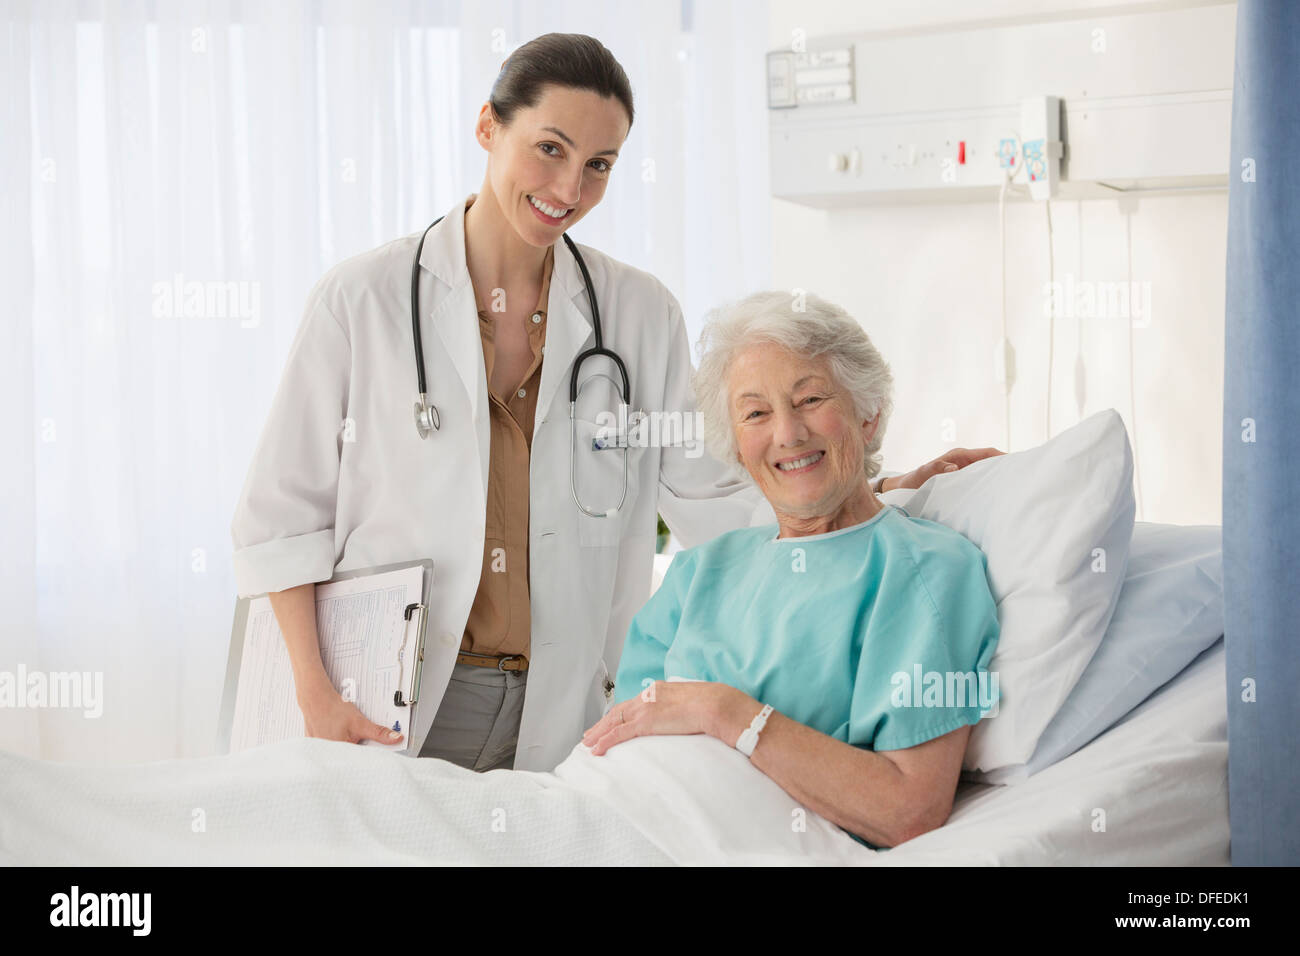 Portrait of doctor and aging patient in hospital room - Stock Image